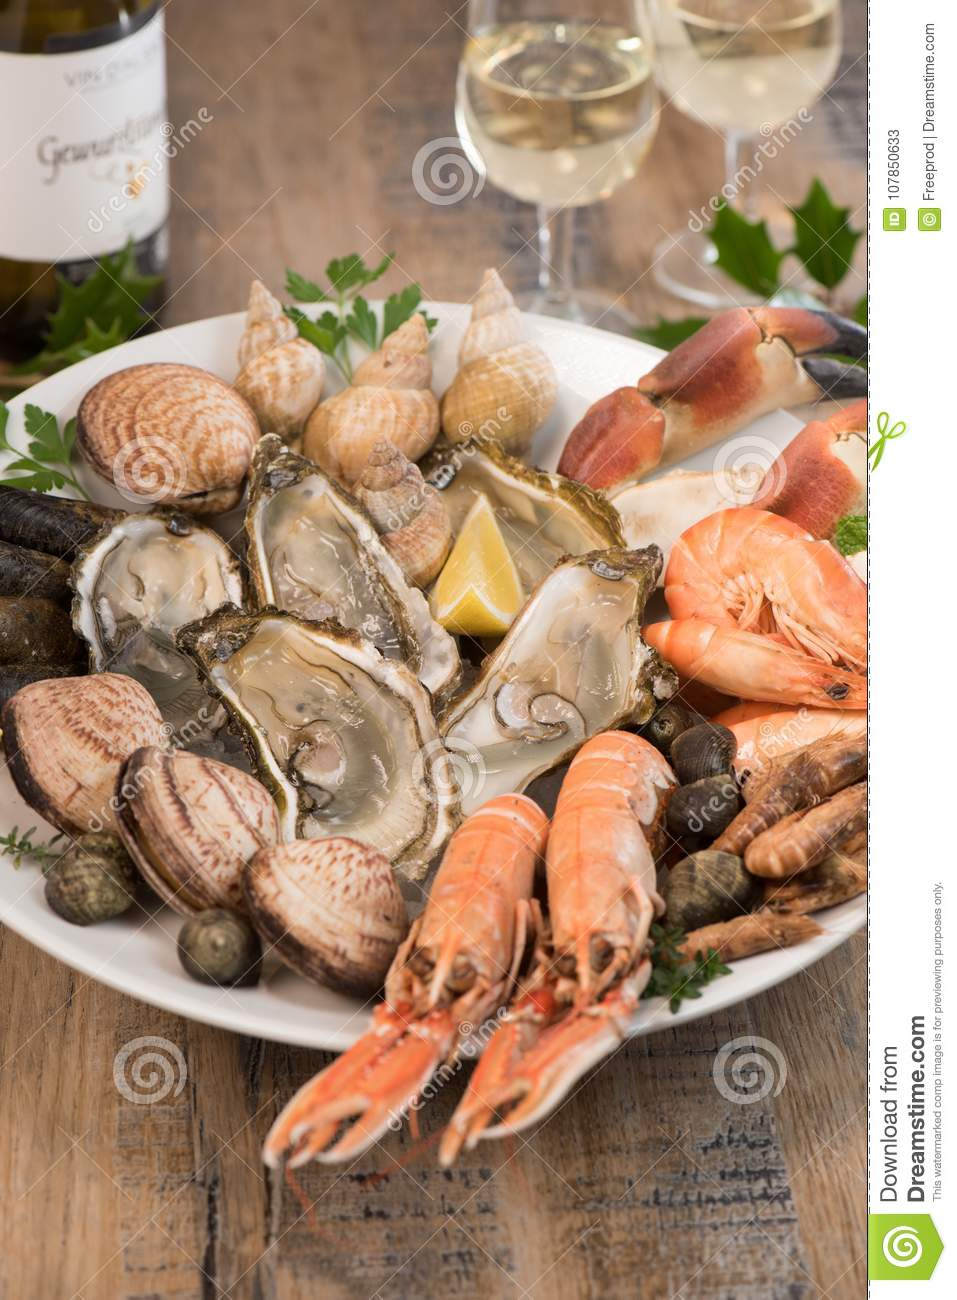 Fresh Seafood Platter With Lobster Mussels And Oysters Stock Image Image Of Bulot Presentation 107850633